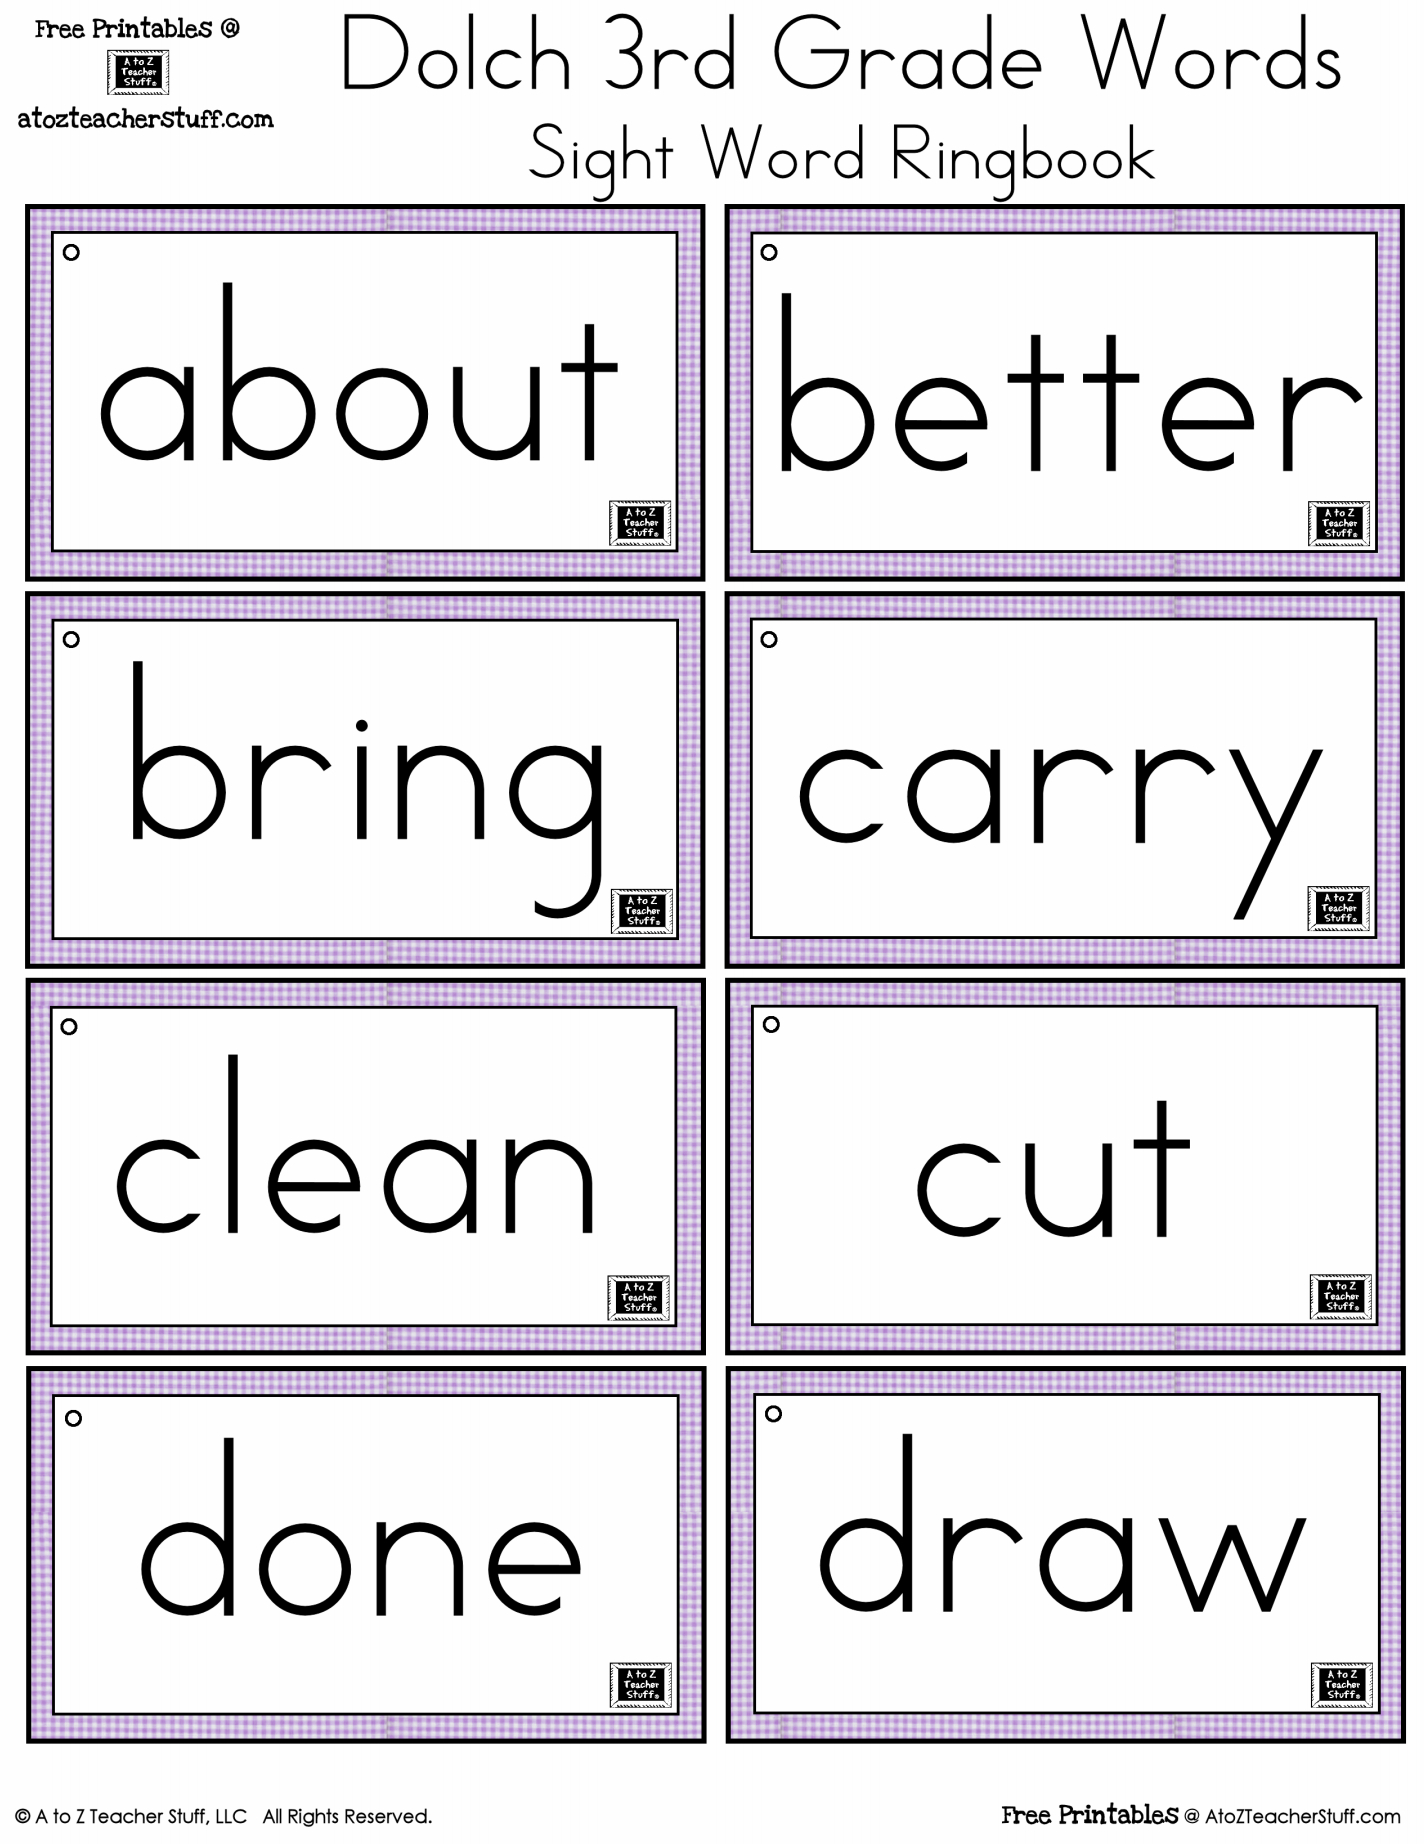 Just Sweet And Simple Preschool Practice Printable Dolch